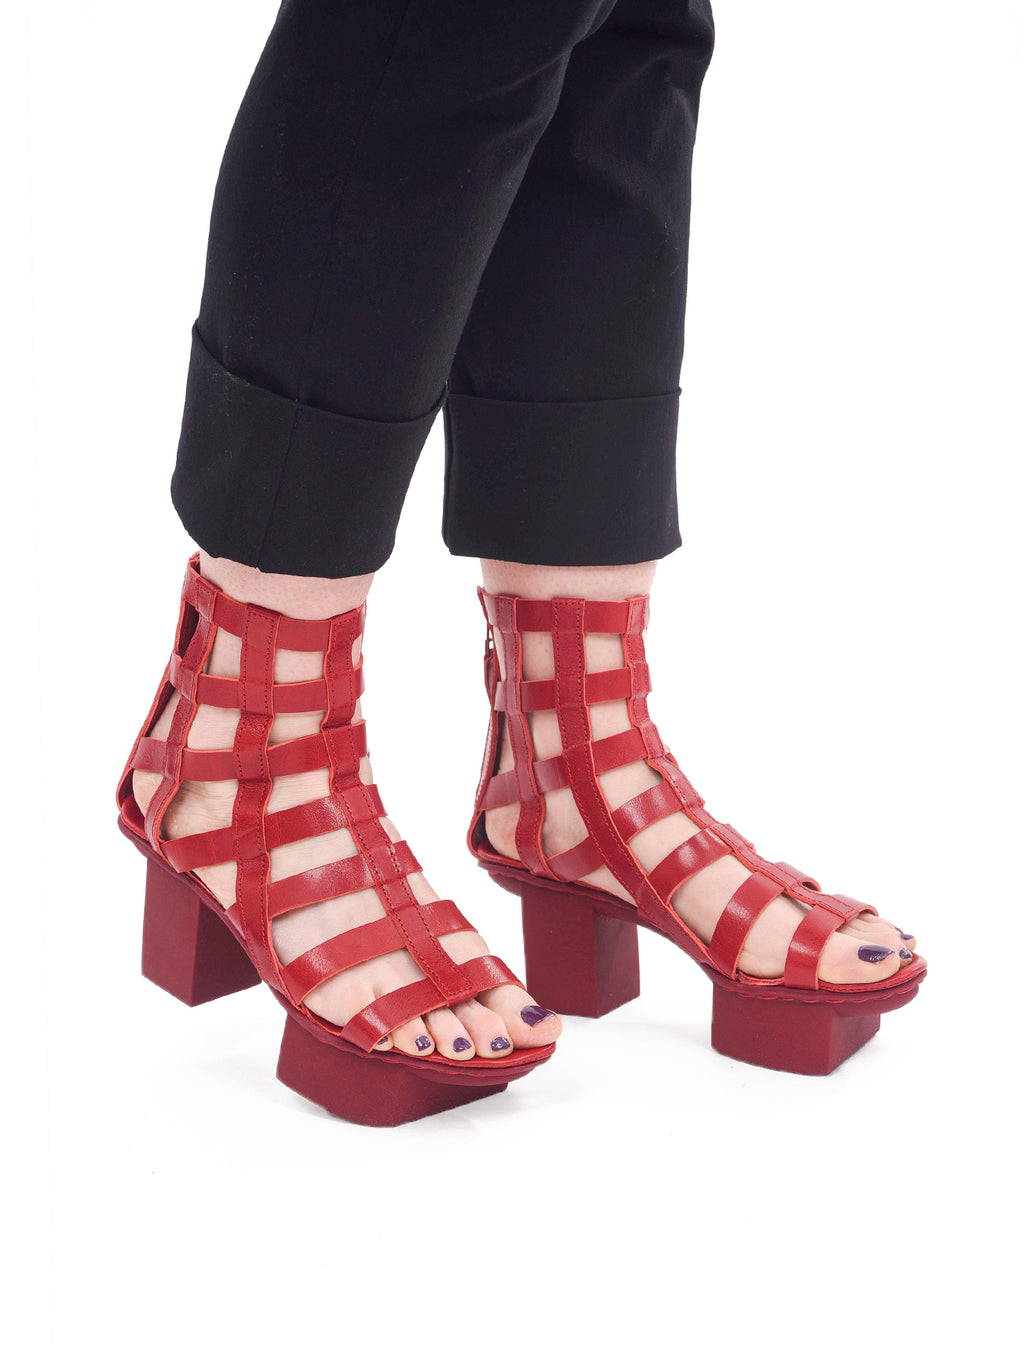 Trippen Shoes Aviary Happy Shoes, Red LXP